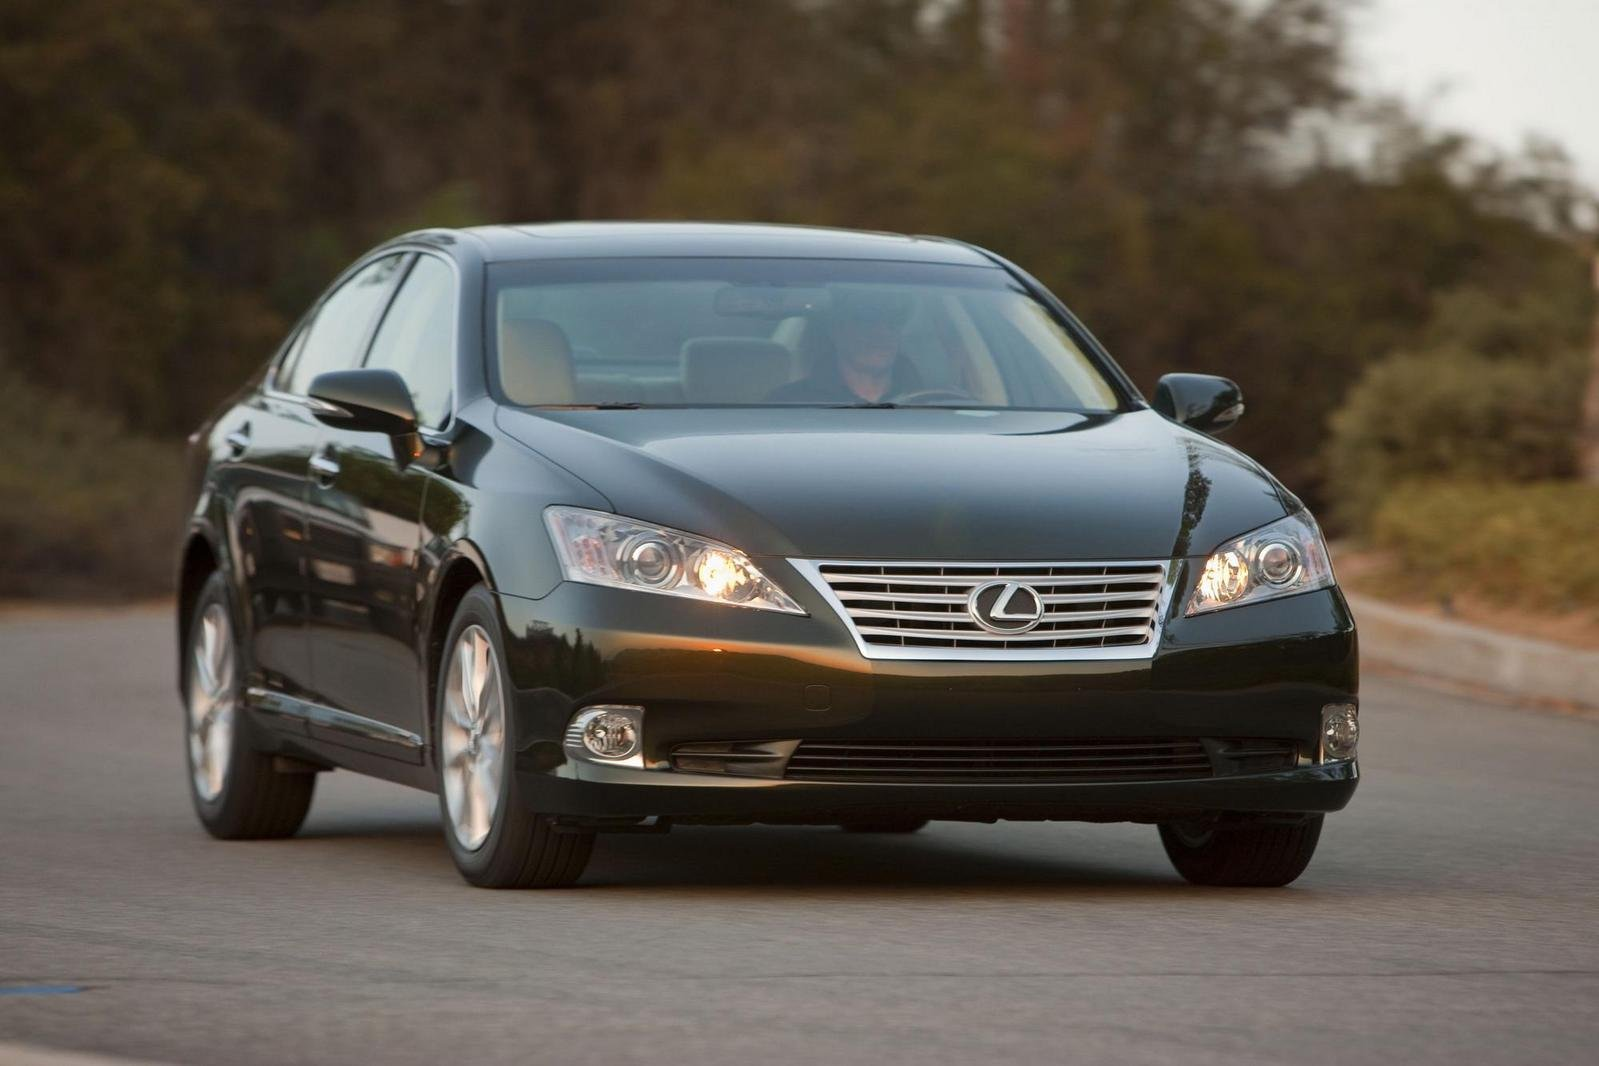 2010 lexus es350 review top speed. Black Bedroom Furniture Sets. Home Design Ideas